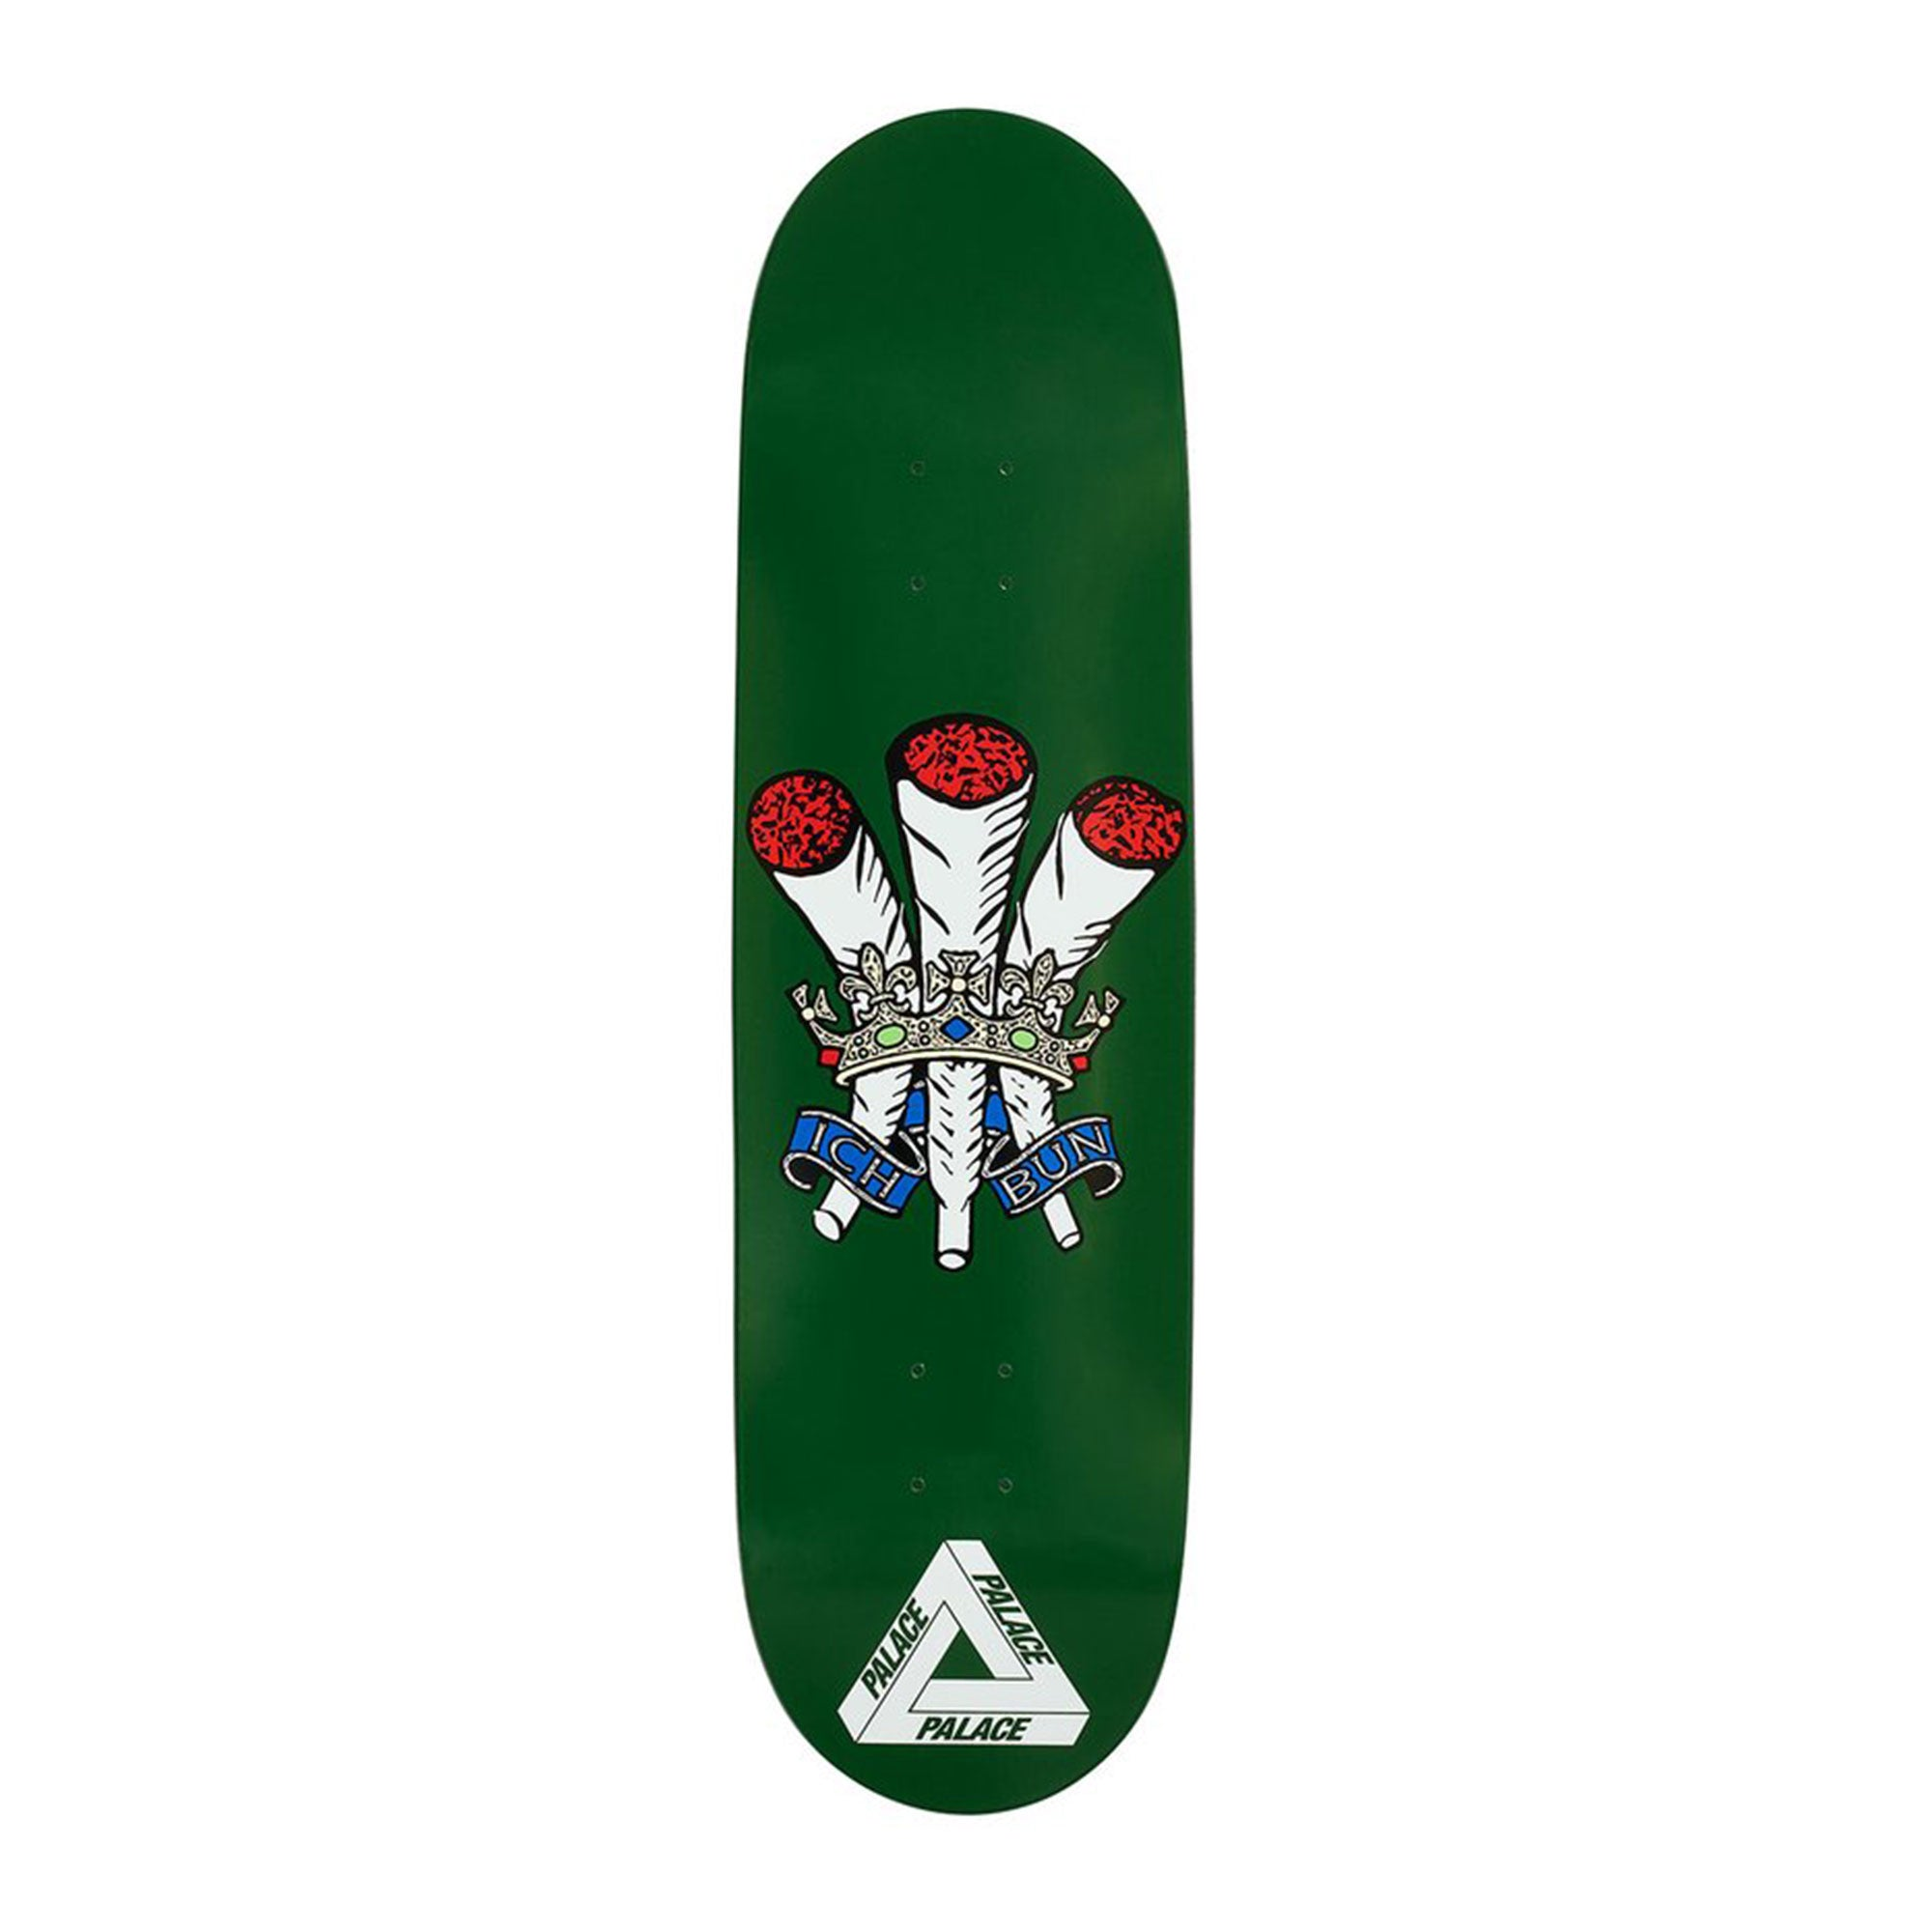 Palace Ich Bun Deck Product Photo #1